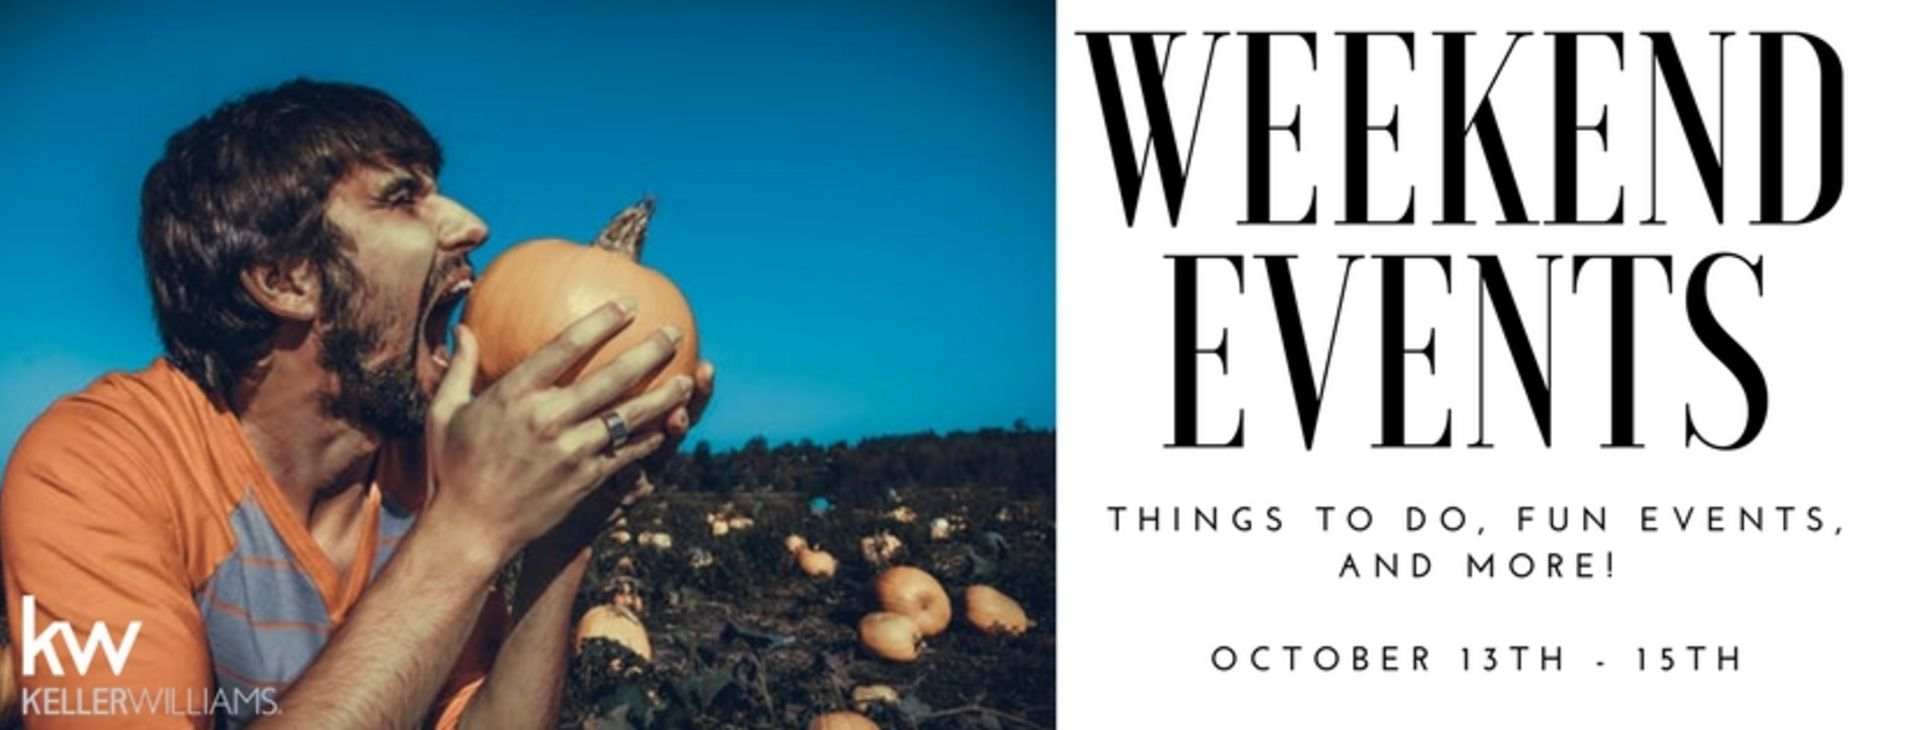 Weekend Events October 13th-15th